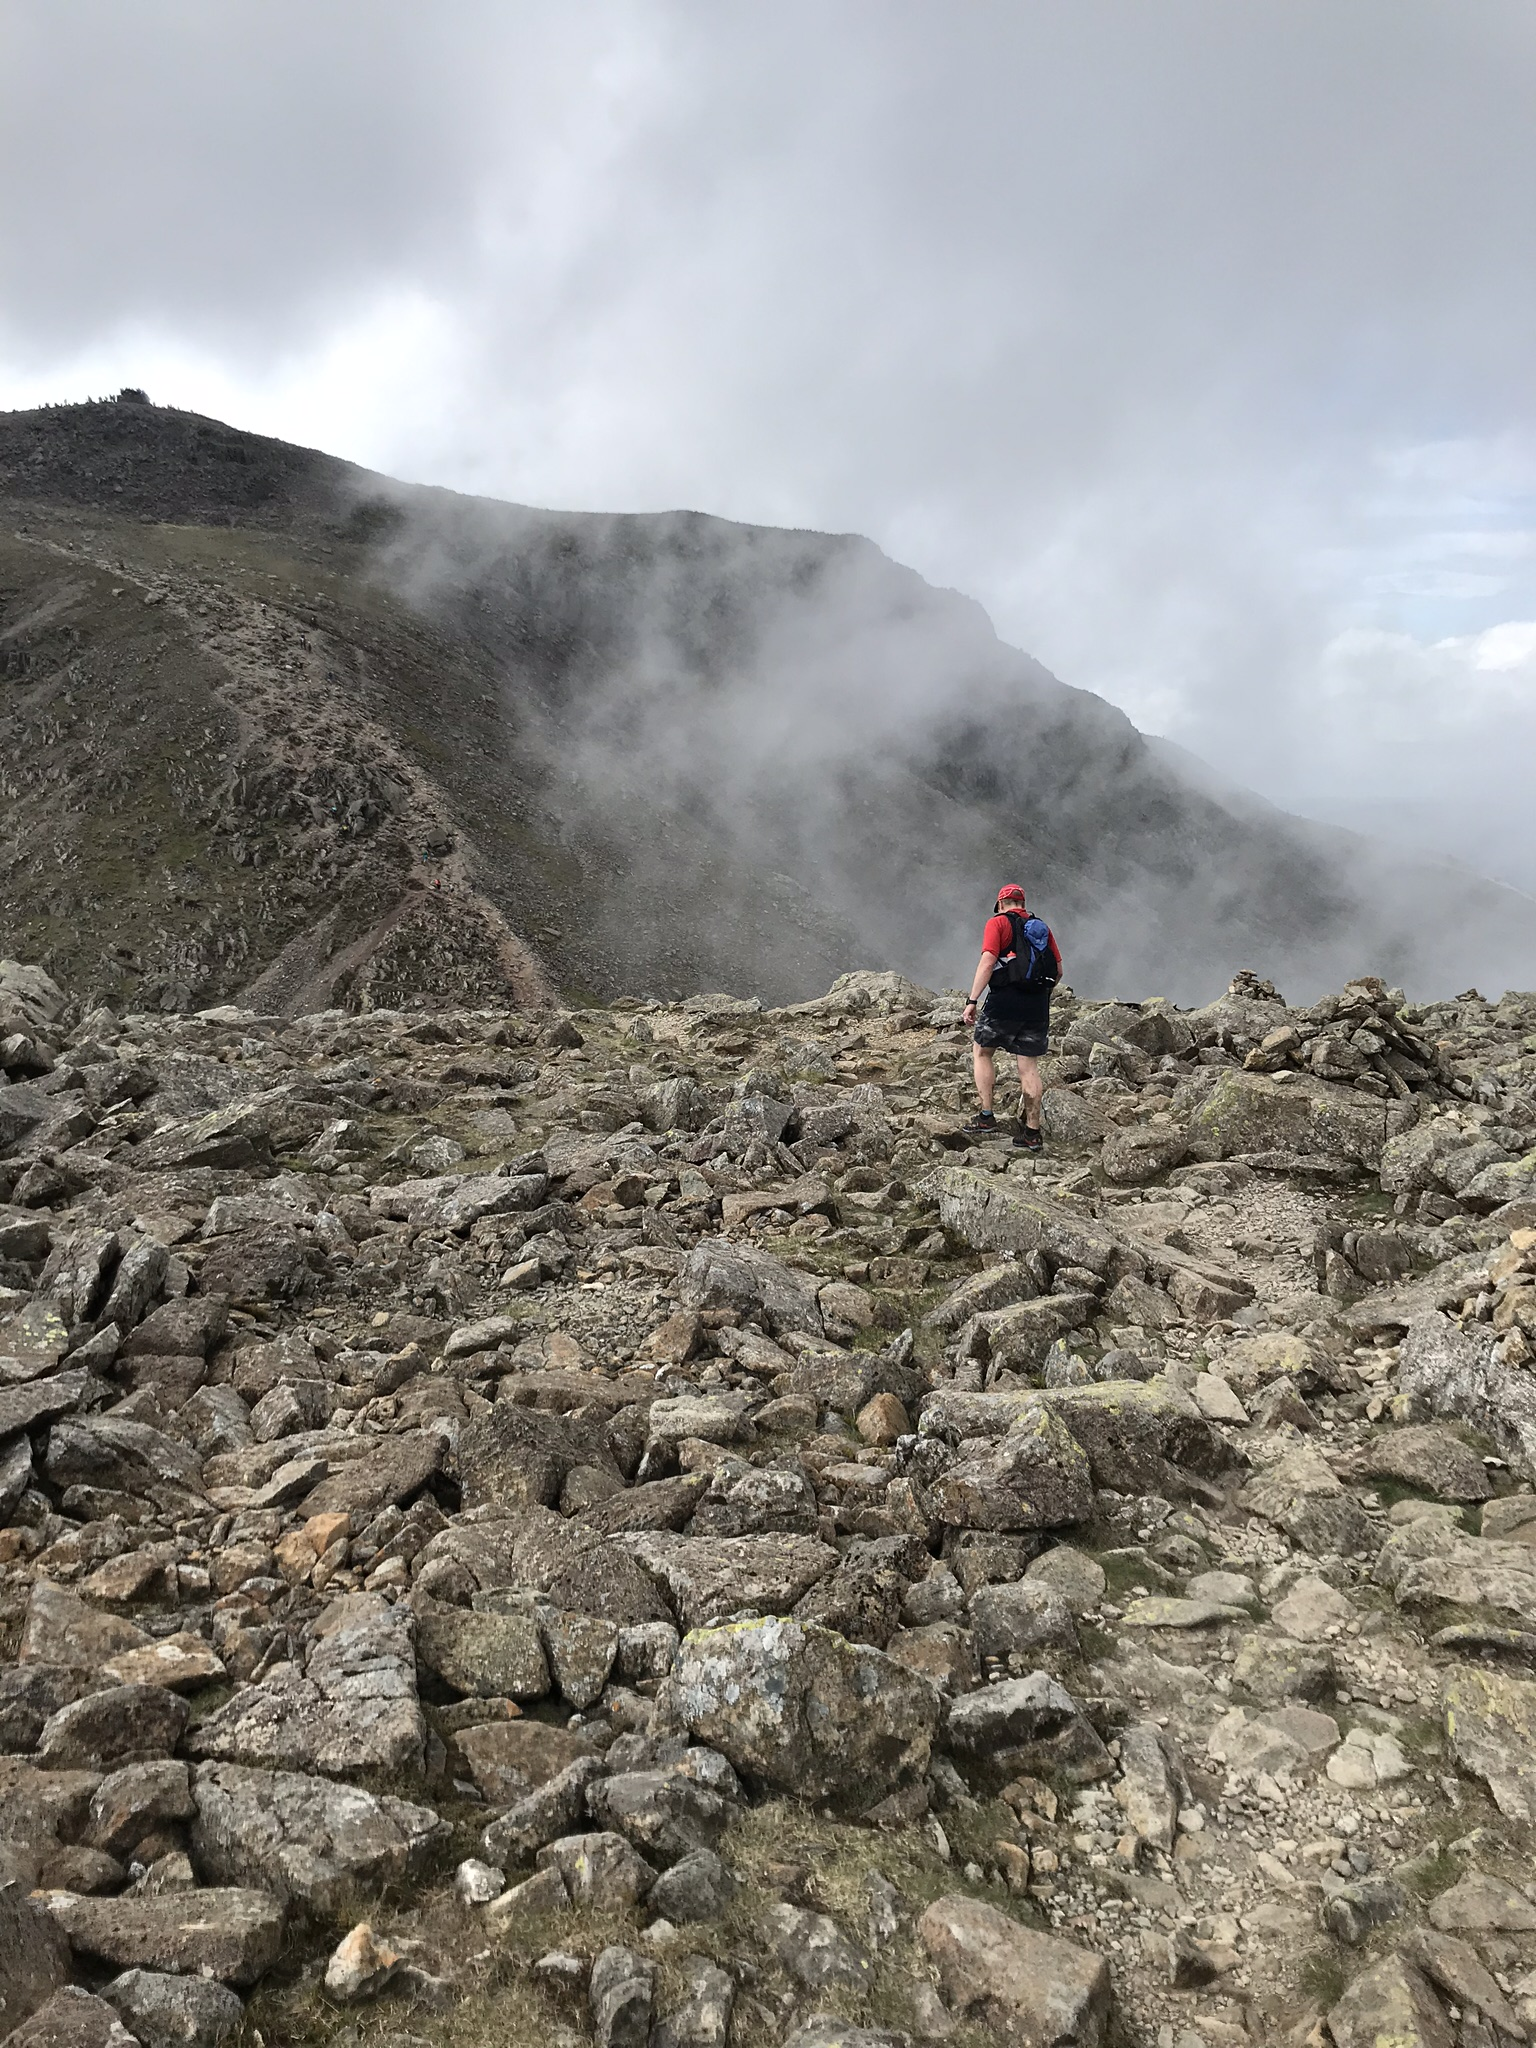 Gareth on the way to Scafell Pike summit.